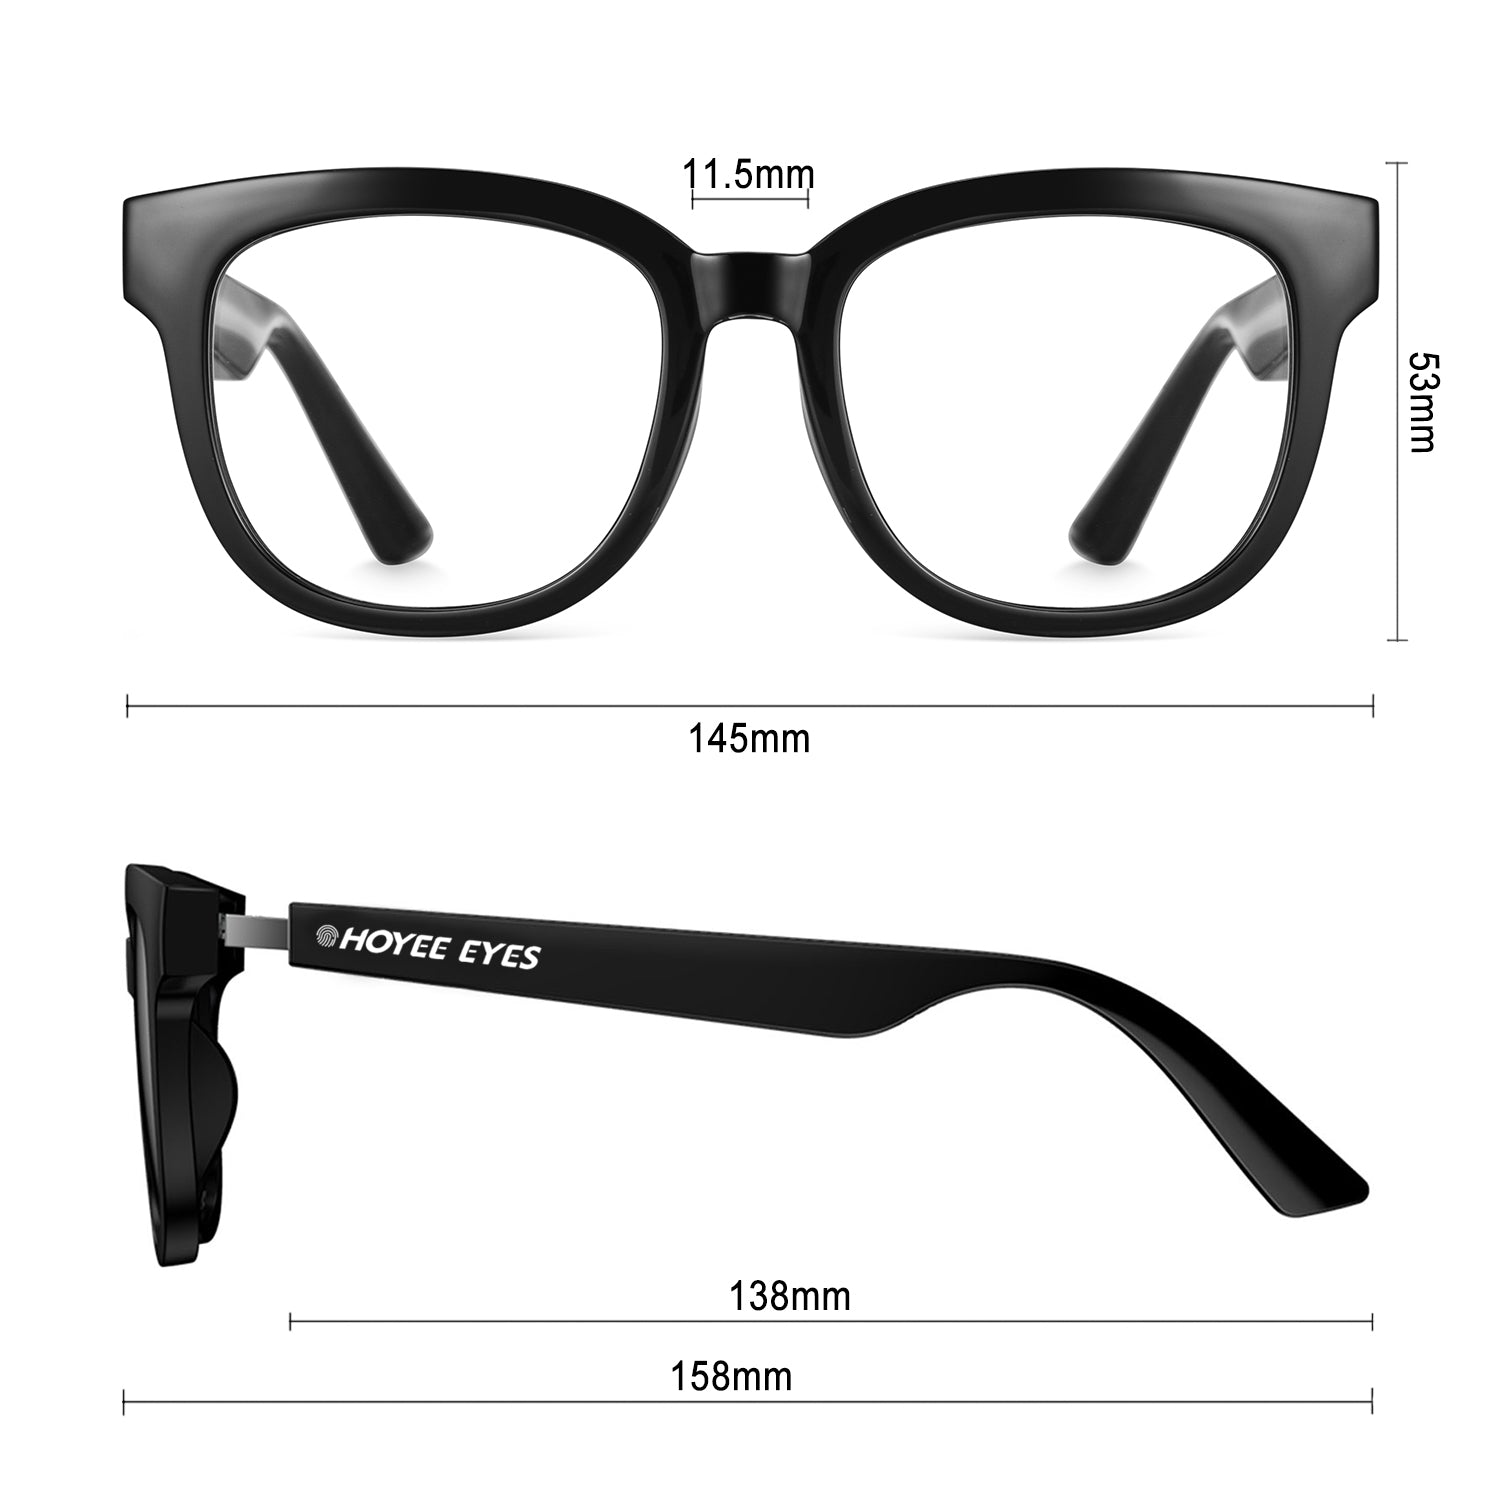 hoyee eyes nova smart blue light blockers dimensions